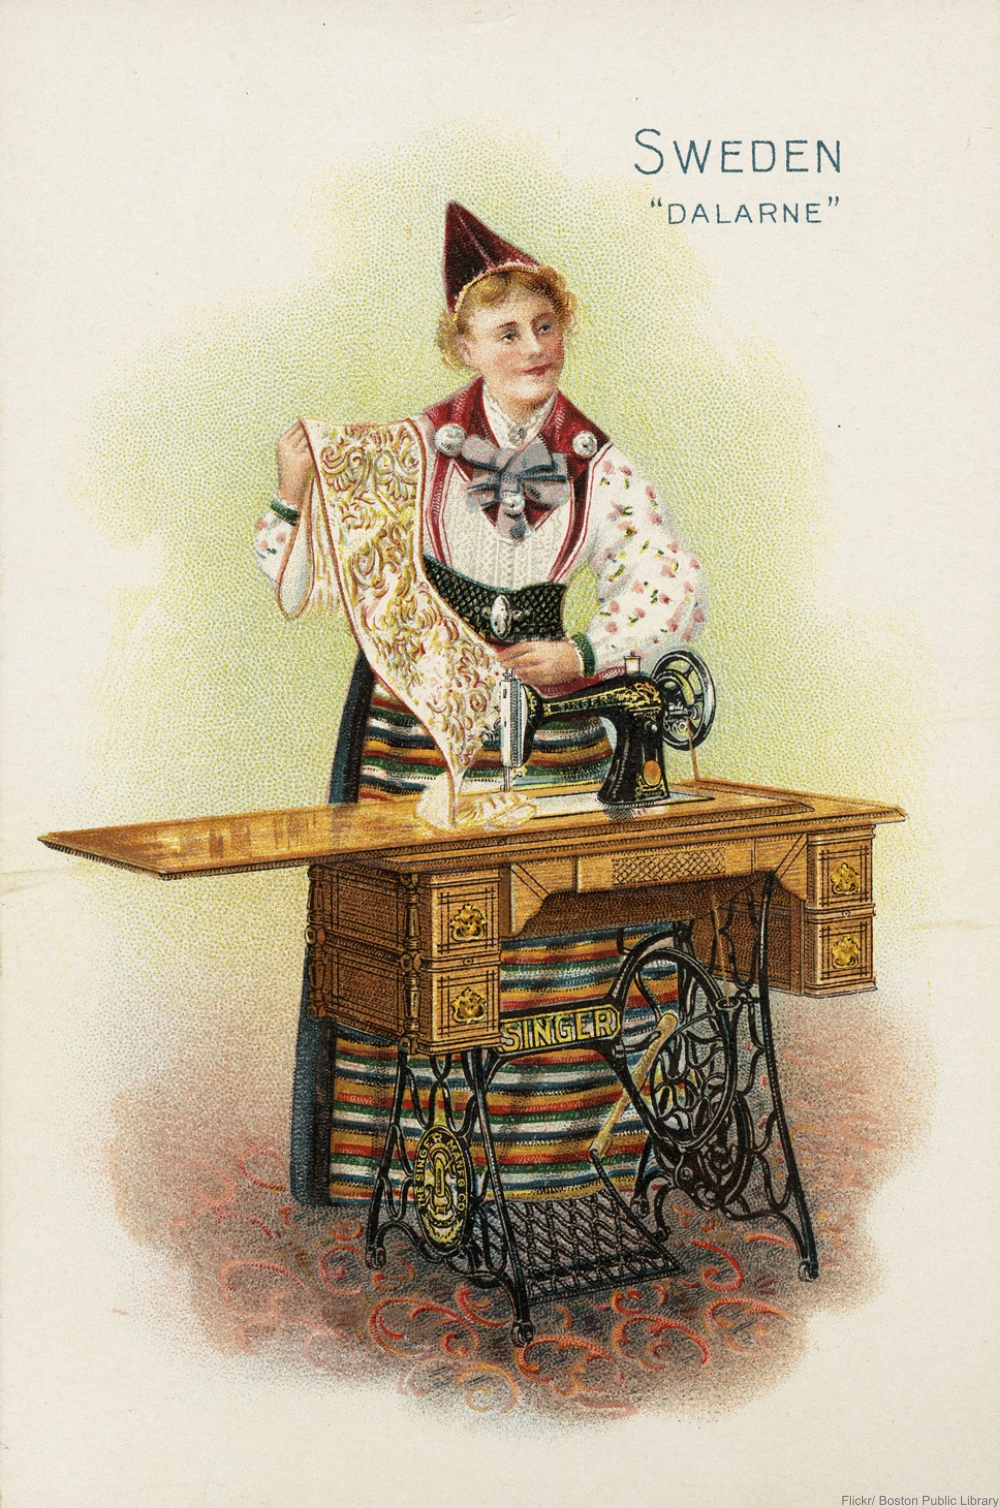 Singer's 1890s lithograph advertisements are gorgeous